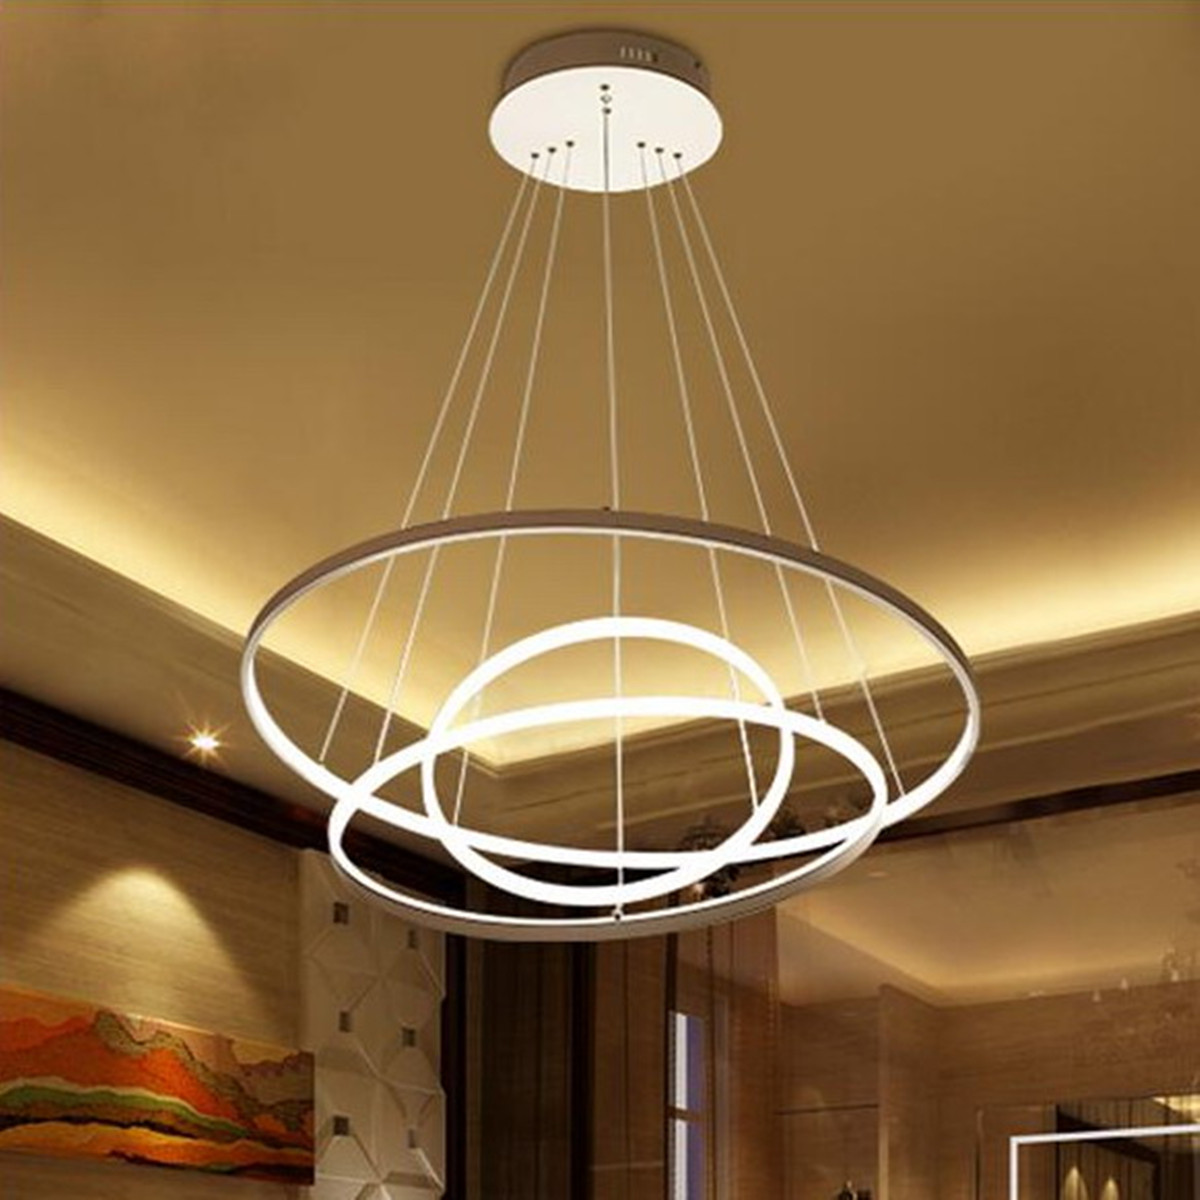 Details about modern circular ring pendant light acrylic aluminum led chandelier ceiling lamp